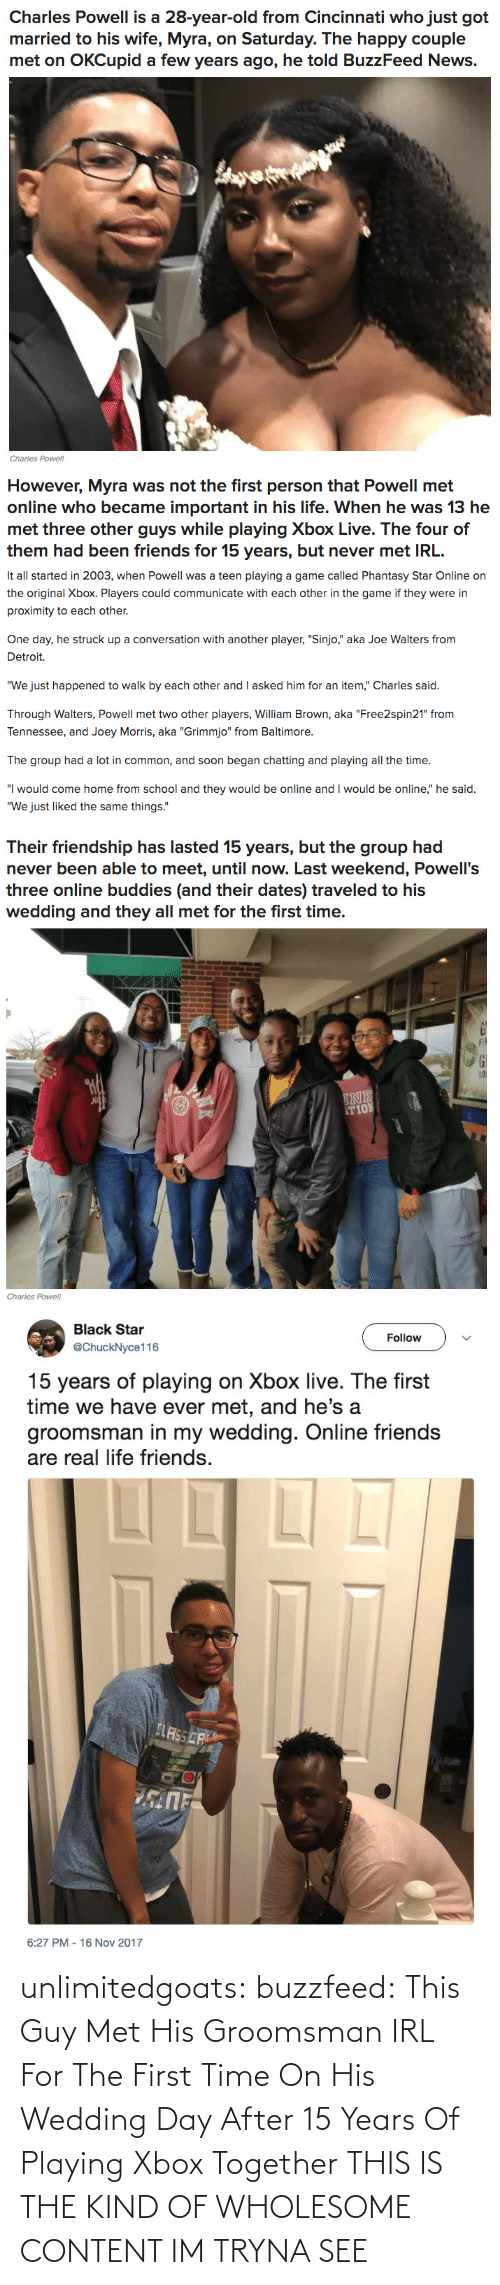 for the first time: unlimitedgoats:  buzzfeed: This Guy Met His Groomsman IRL For The First Time On His Wedding Day After 15 Years Of Playing Xbox Together THIS IS THE KIND OF WHOLESOME CONTENT IM TRYNA SEE